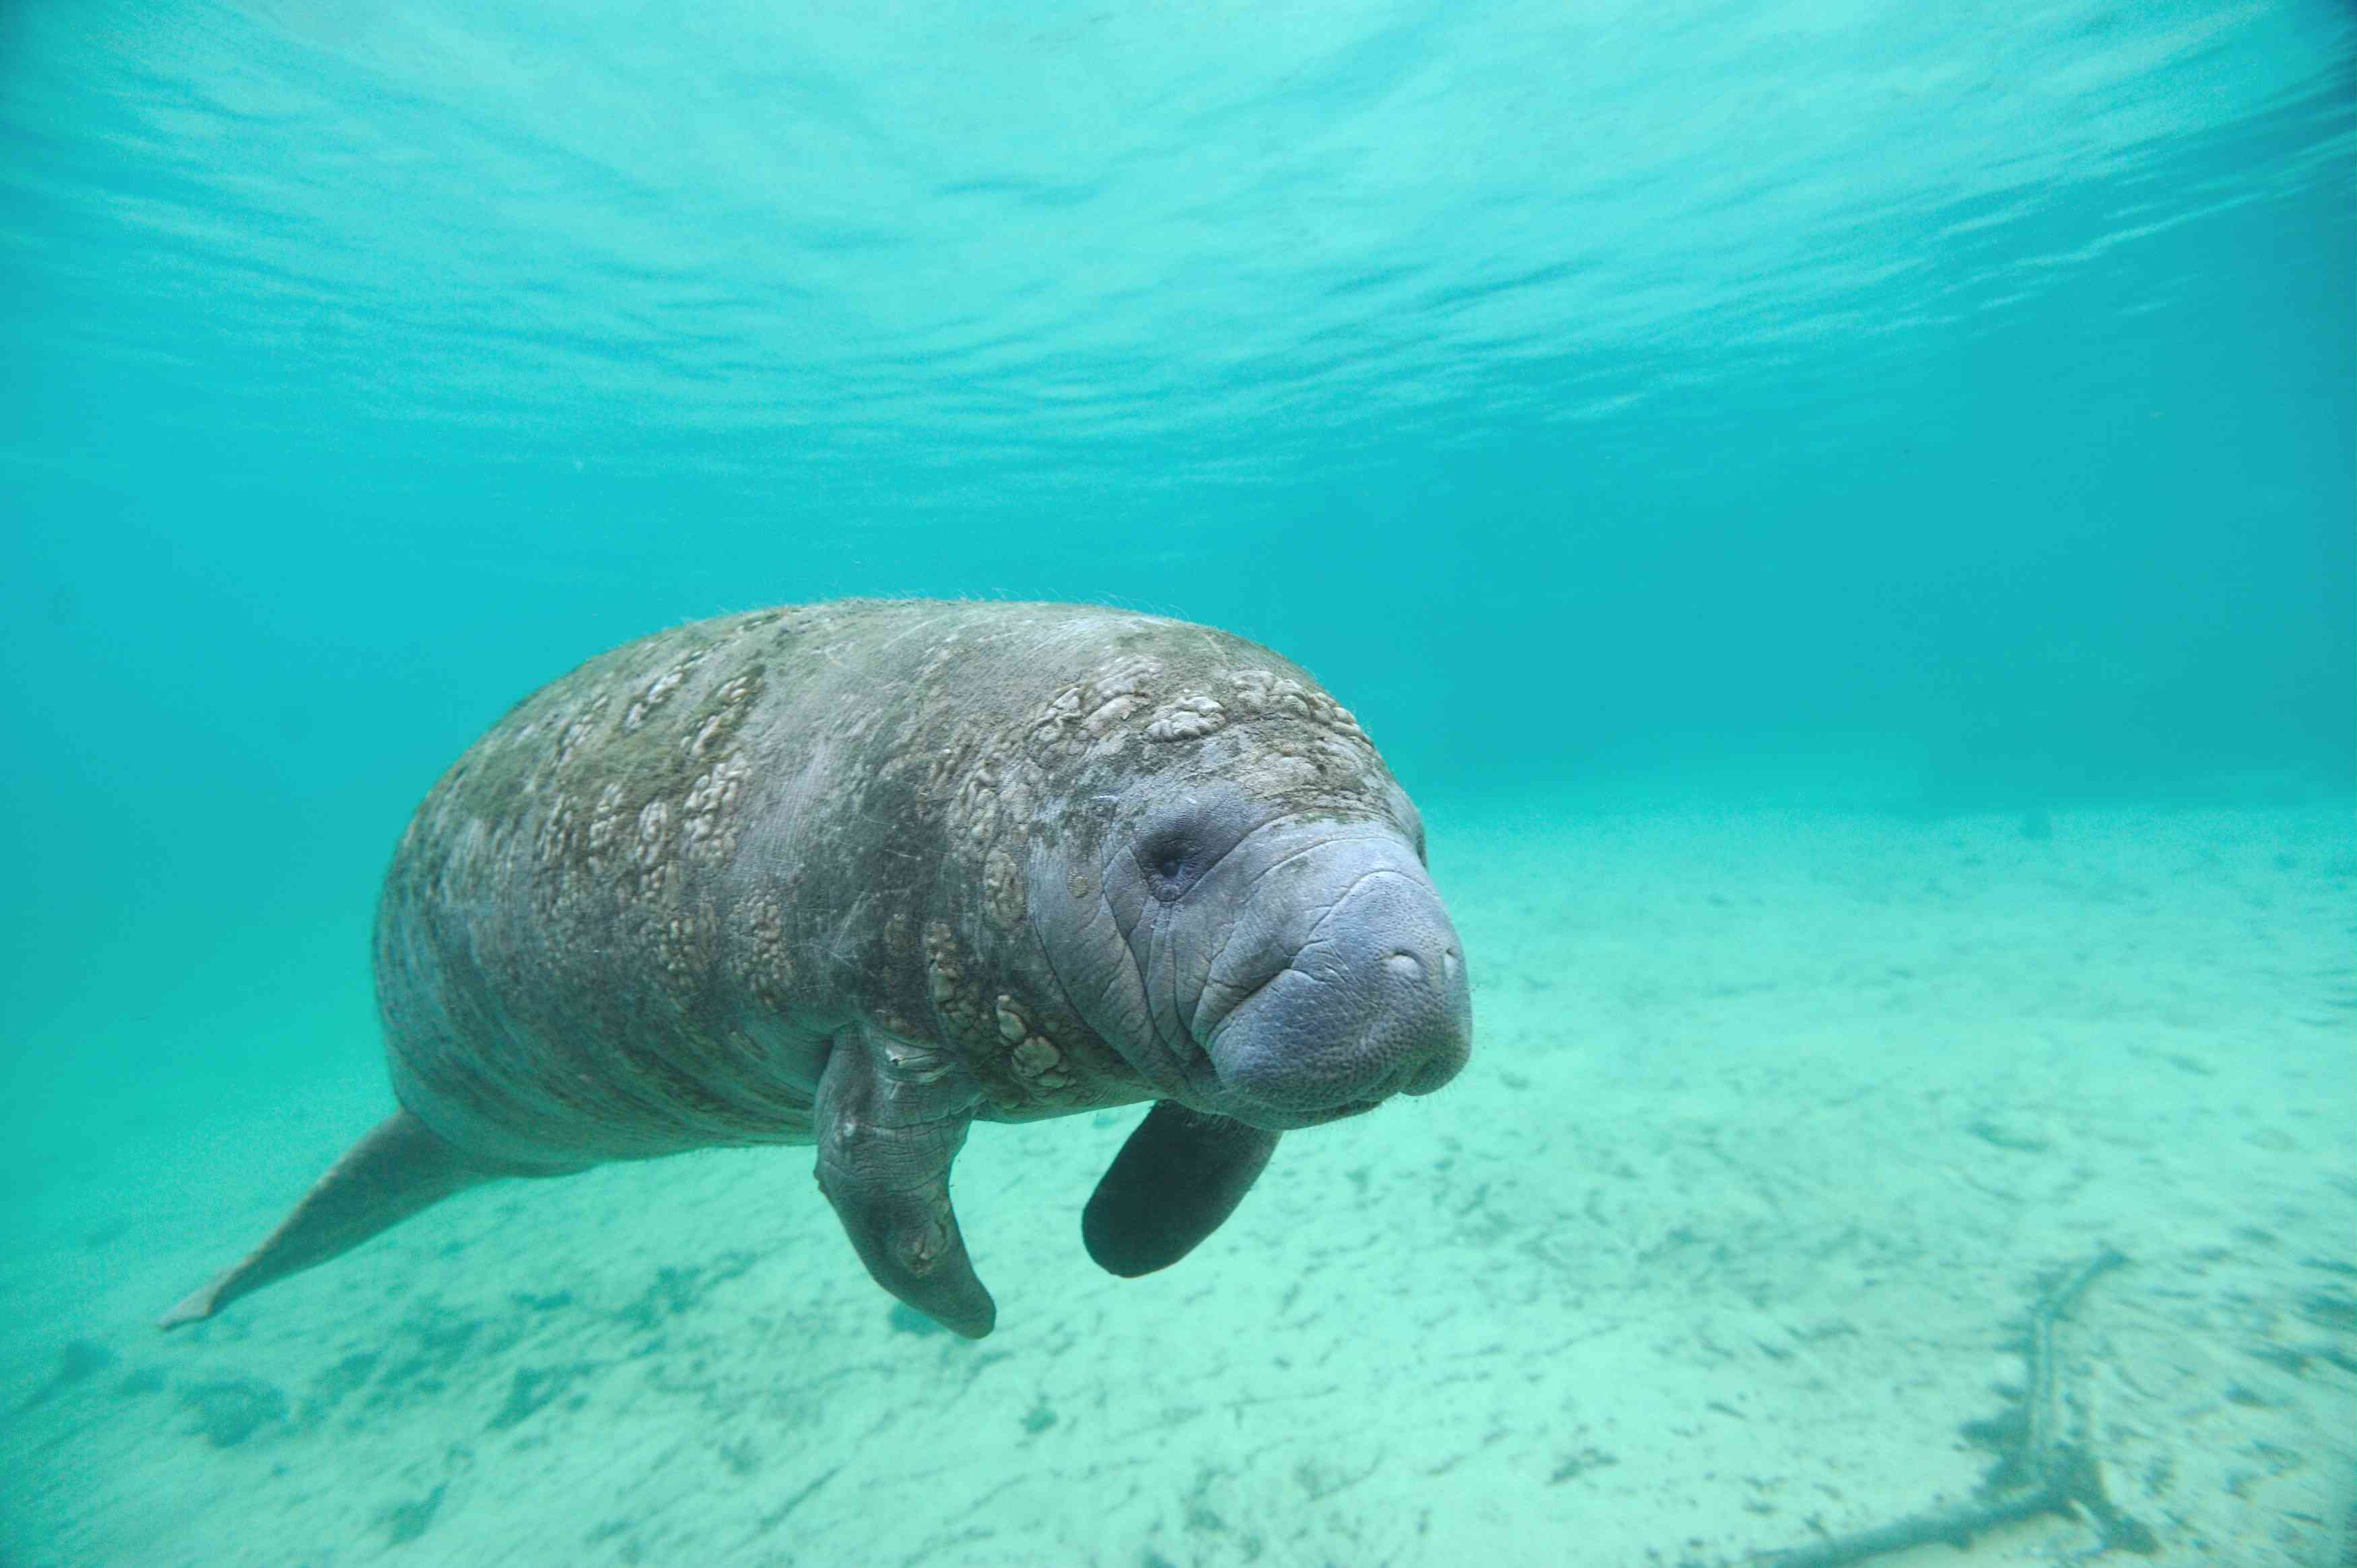 Manatee swimming under the blue waters of the Crystal River in Florida